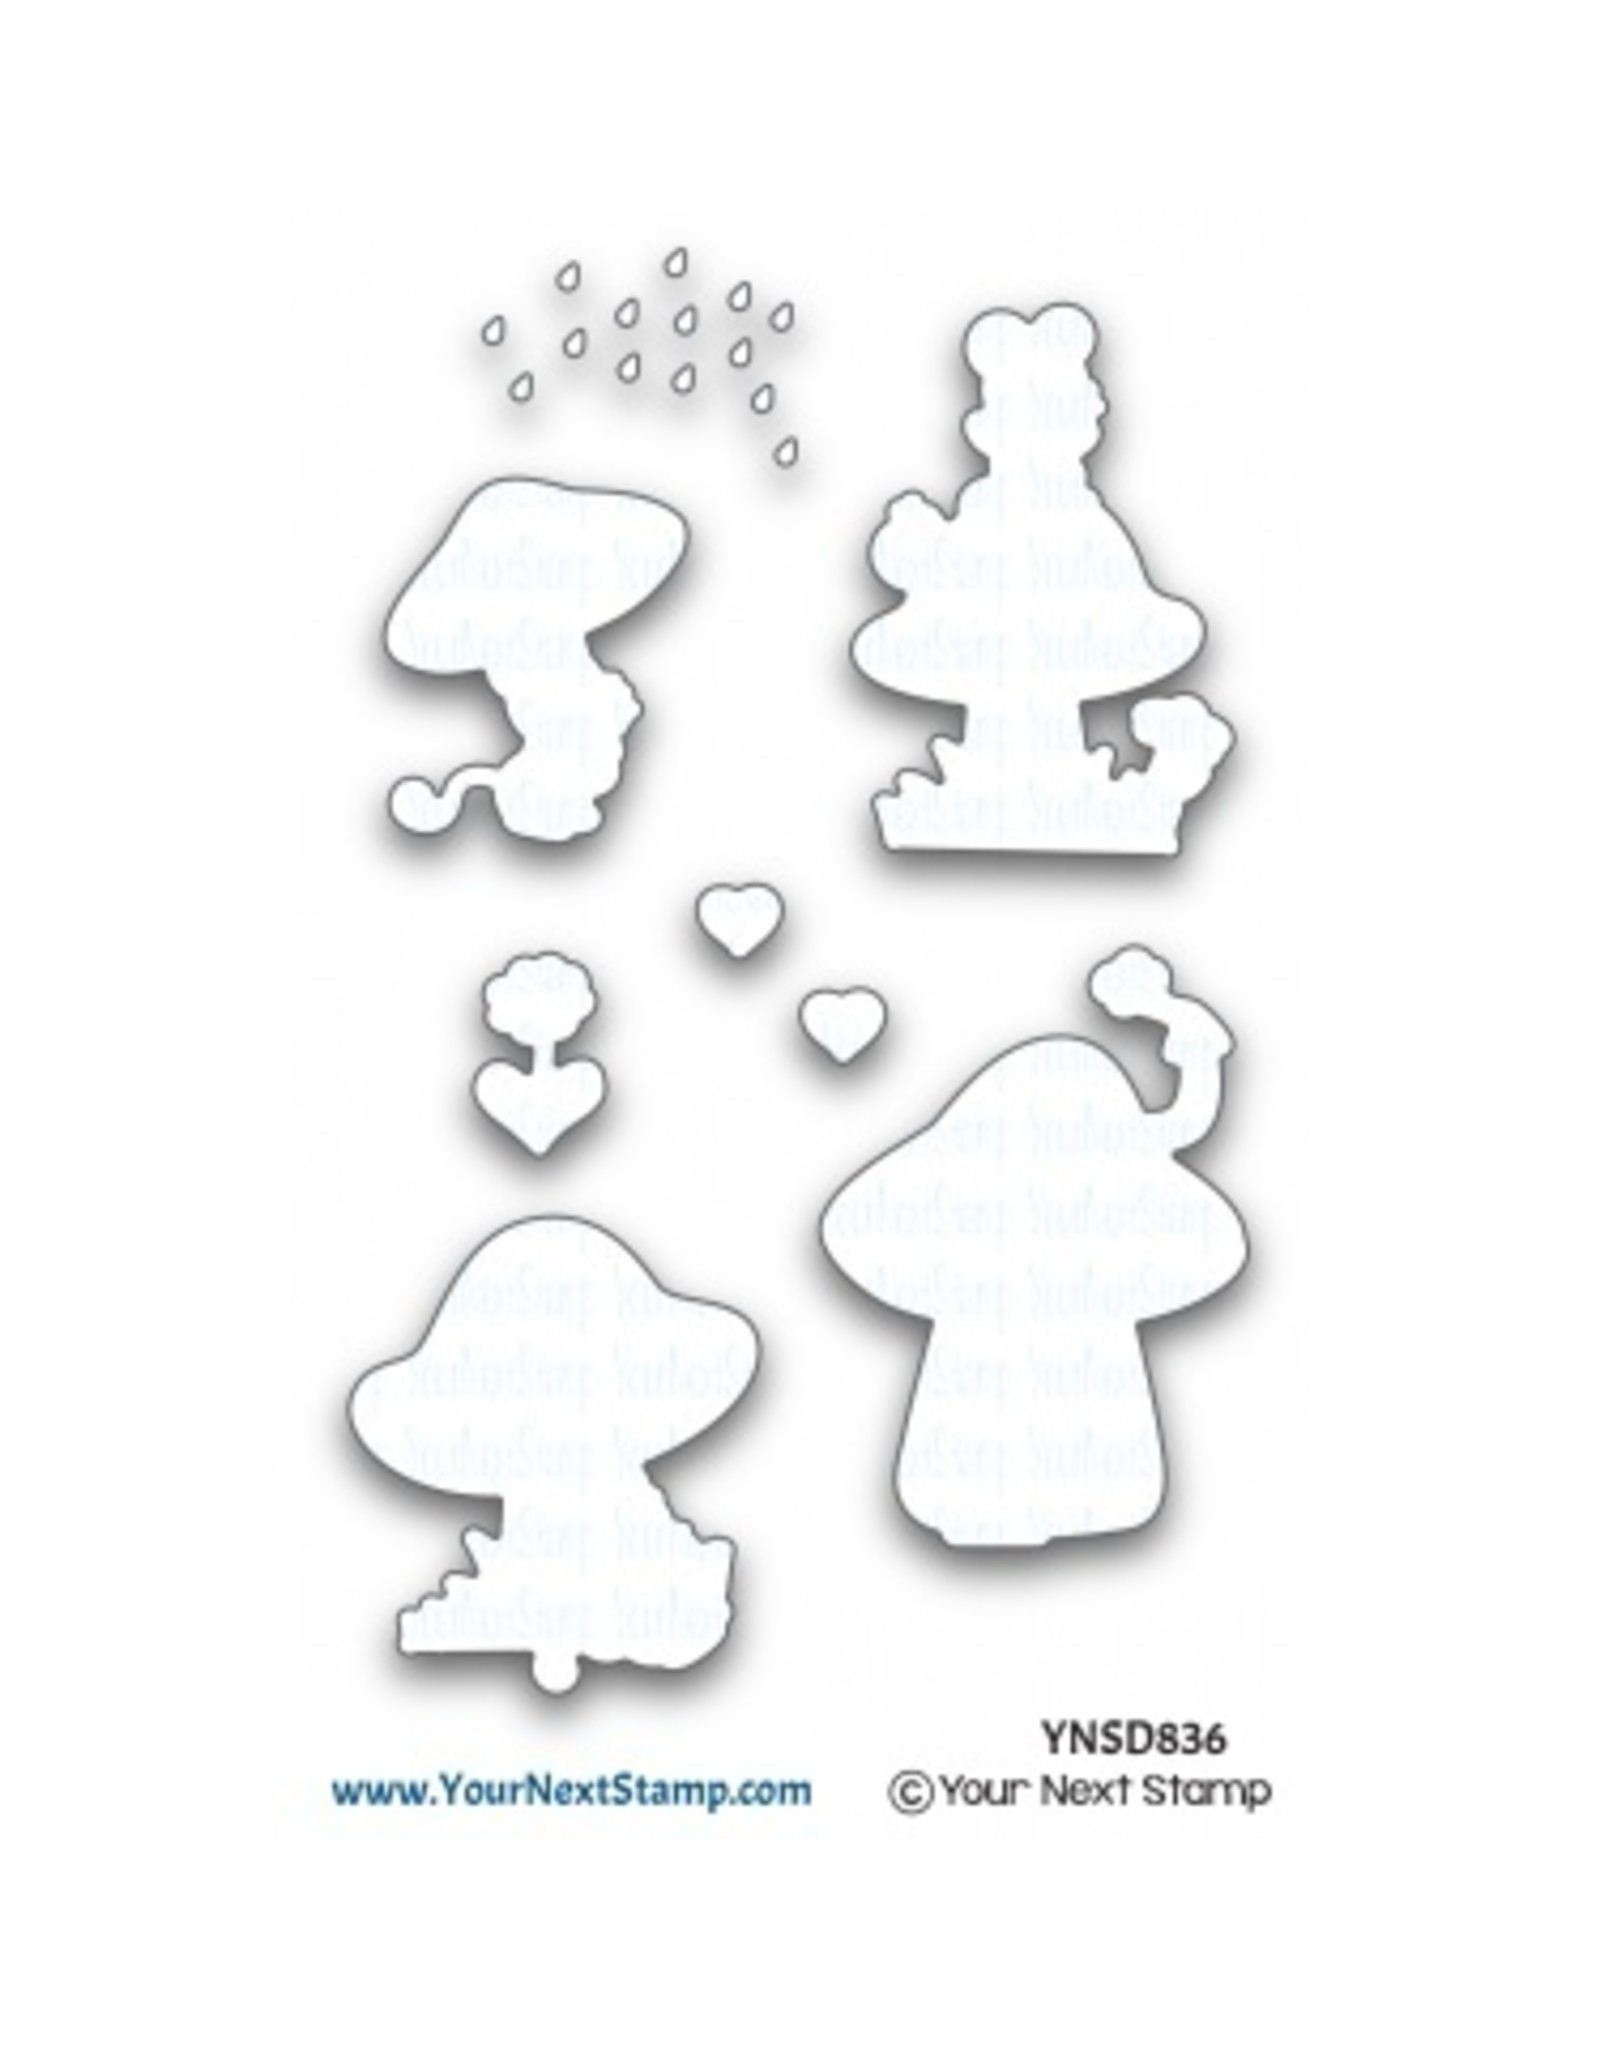 Your Next Stamp So Mush Fun - Clear Stamp Set